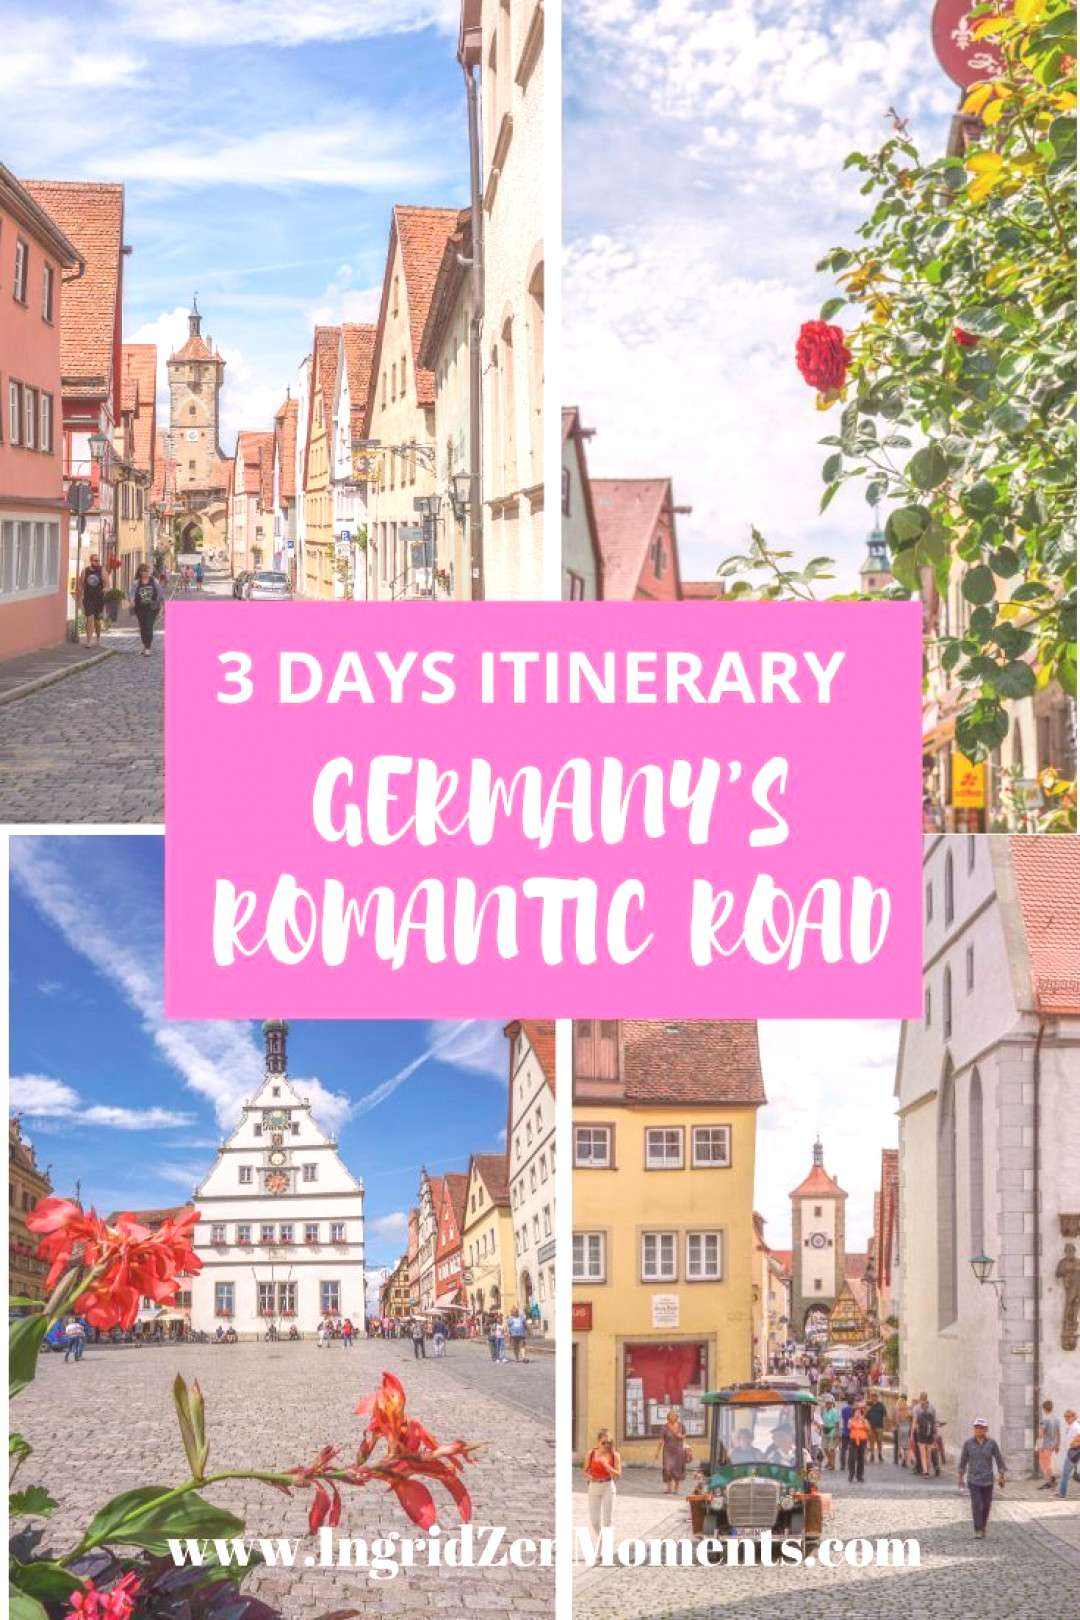 Germanys Romantic road 3 day drive - IngridZenMoments Germany travel destinations to see while you